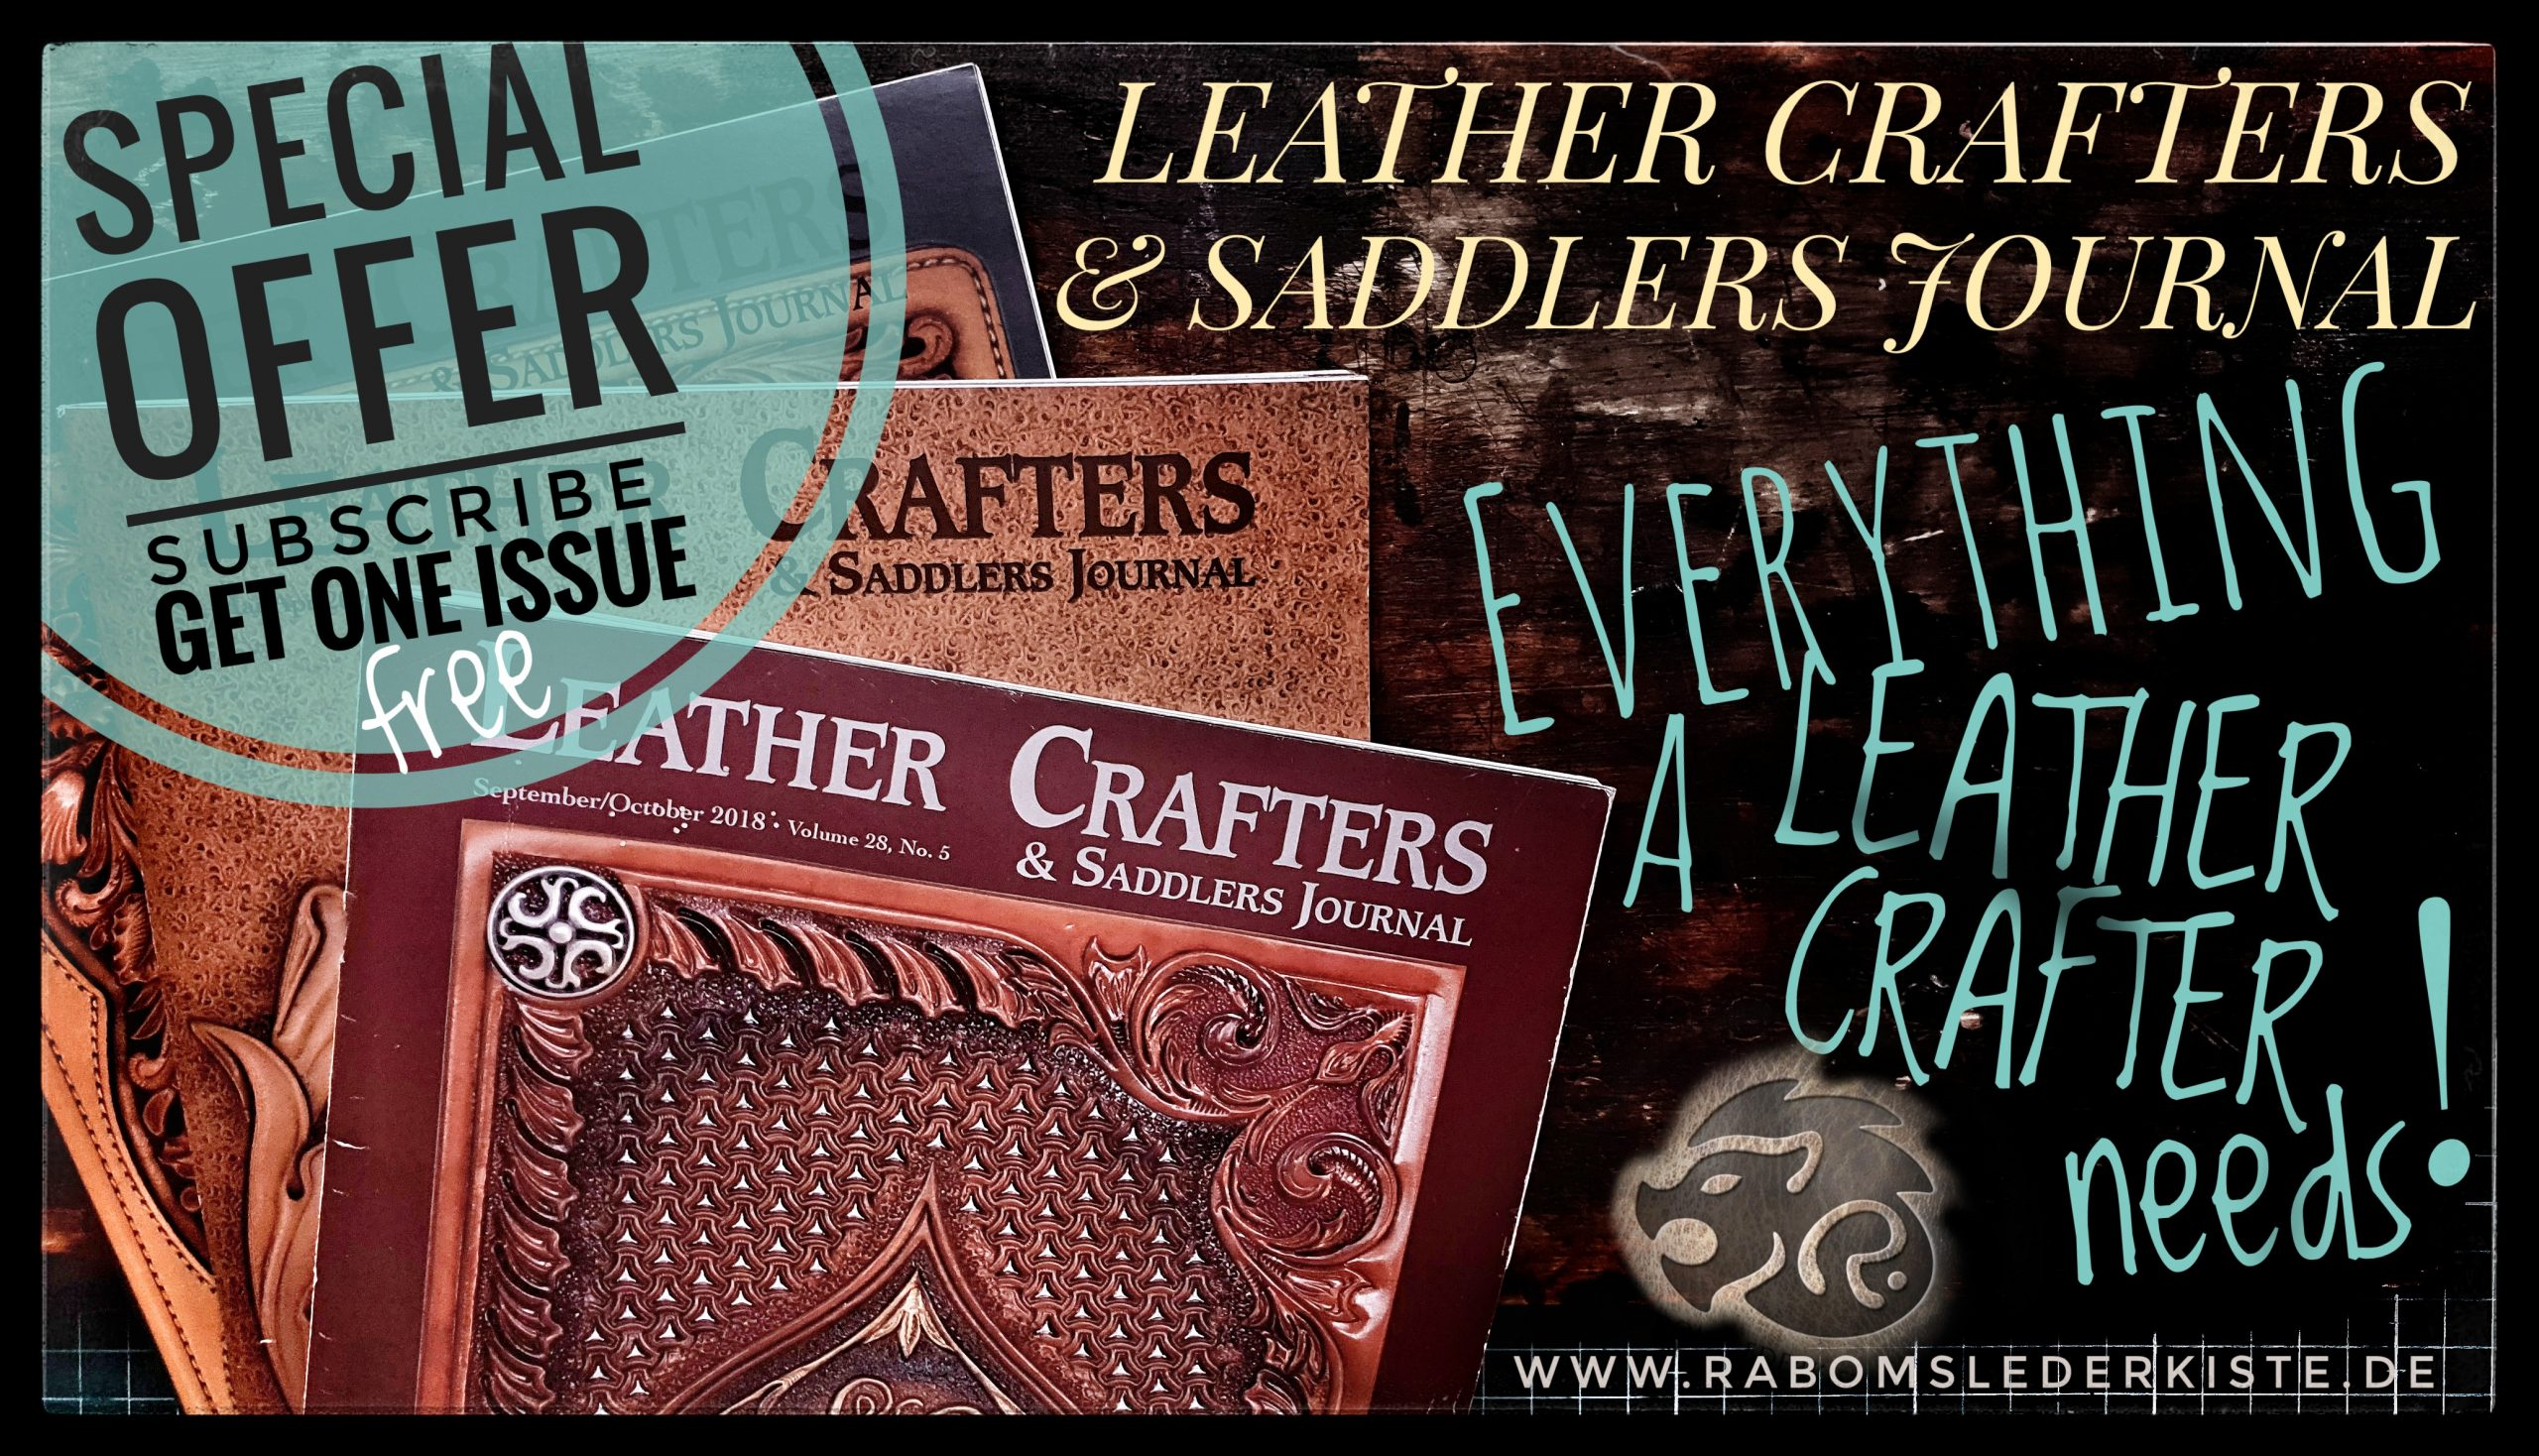 The Leather Crafters & Saddlers Journal – ENG